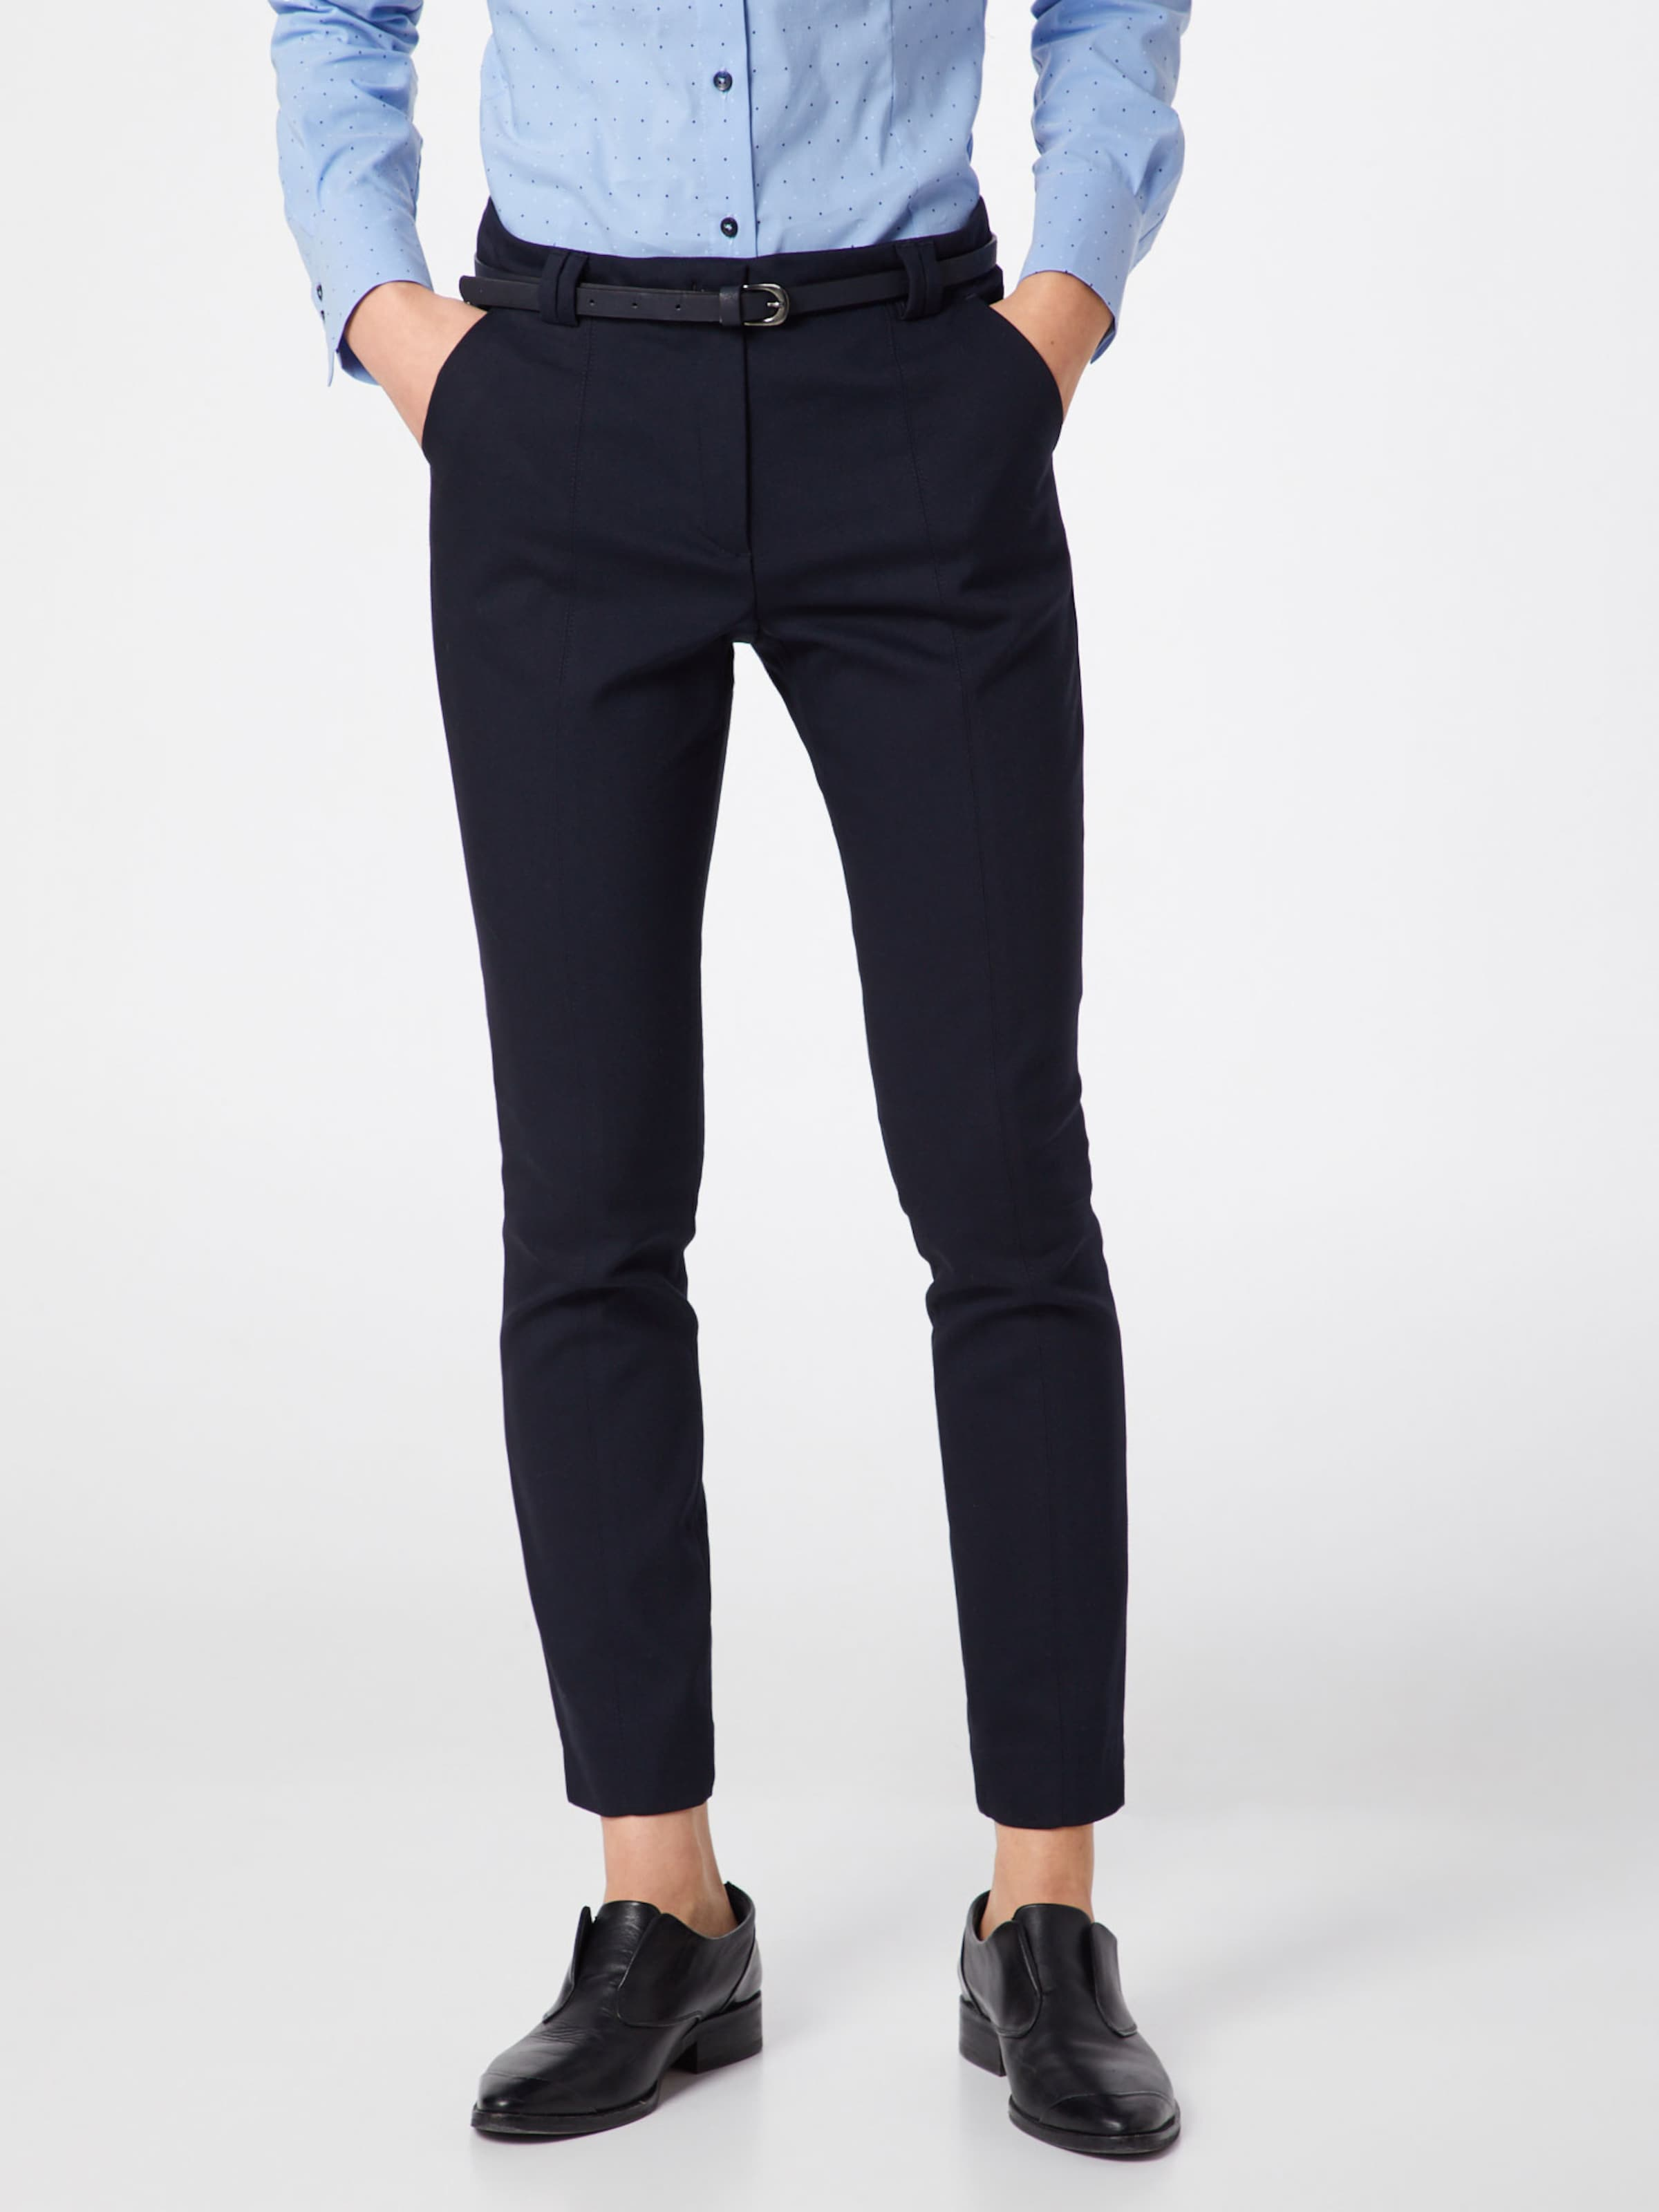 Moreamp; Pantalon Marine Marine Marine Moreamp; En Pantalon En Pantalon En Moreamp; Moreamp; n0vwm8N